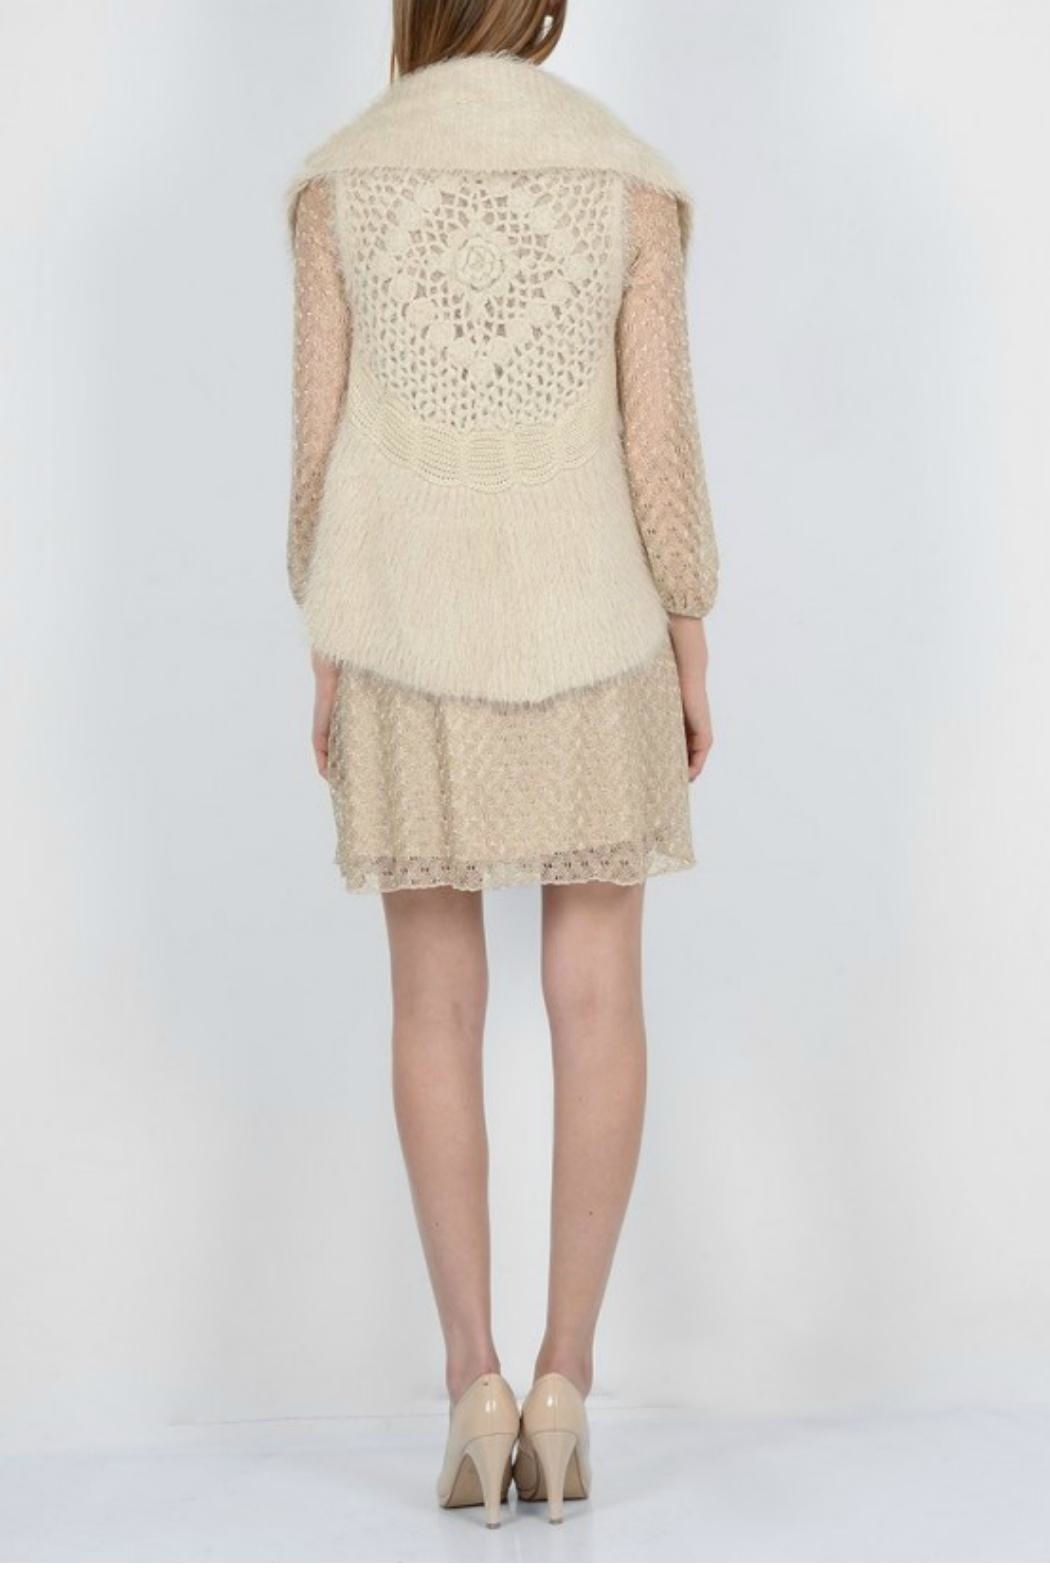 Molly Bracken Knitted Sleeveless Cardigan - Side Cropped Image